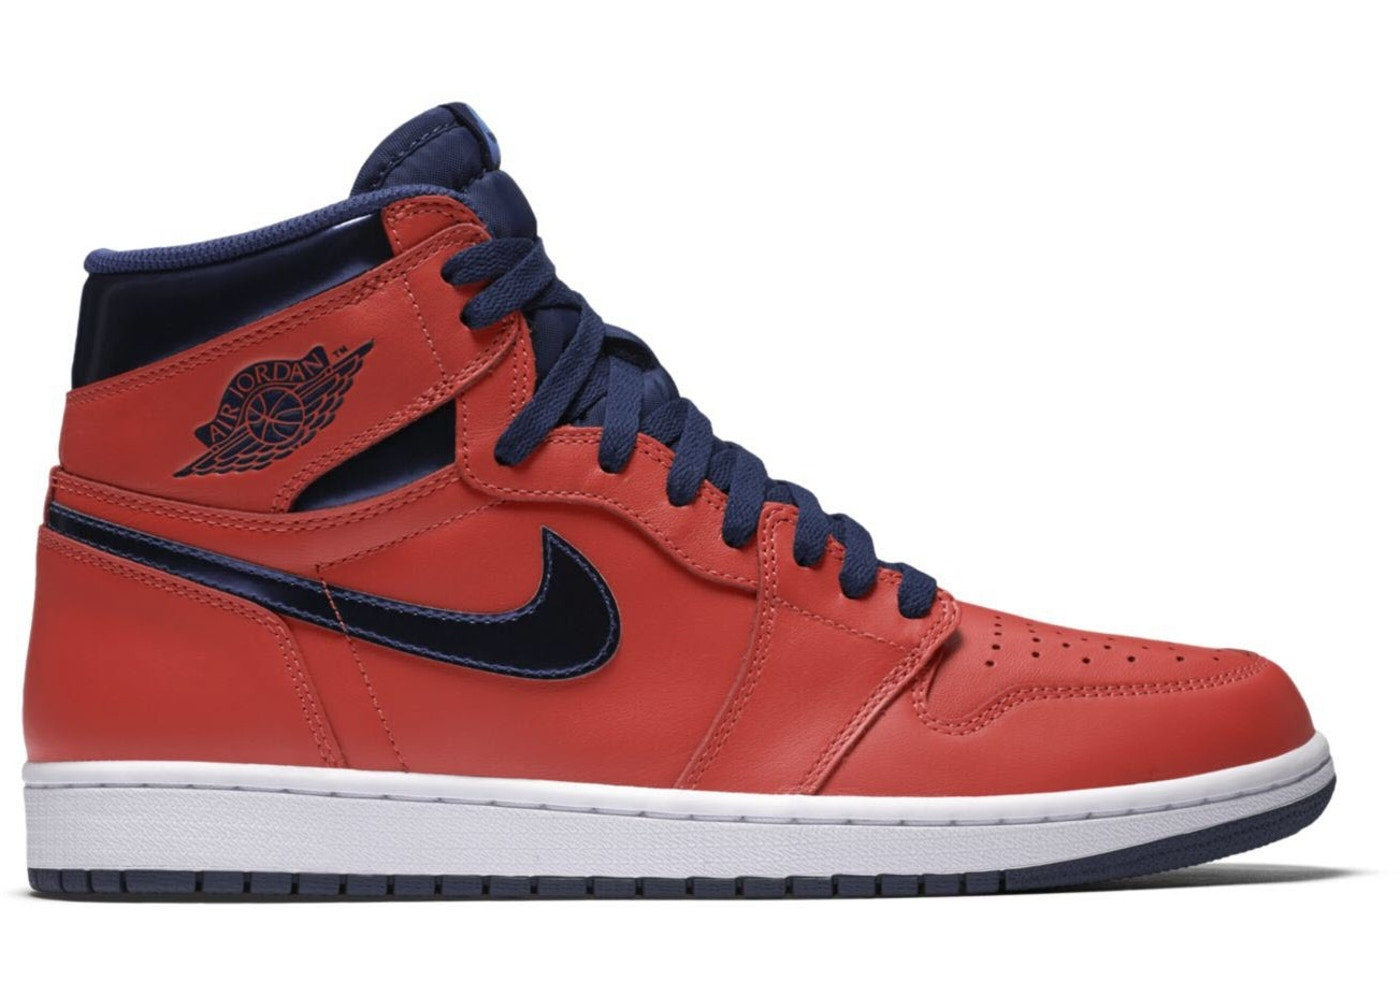 c6815c4d6aa9 Jordan 1 Retro David Letterman - 555088-606